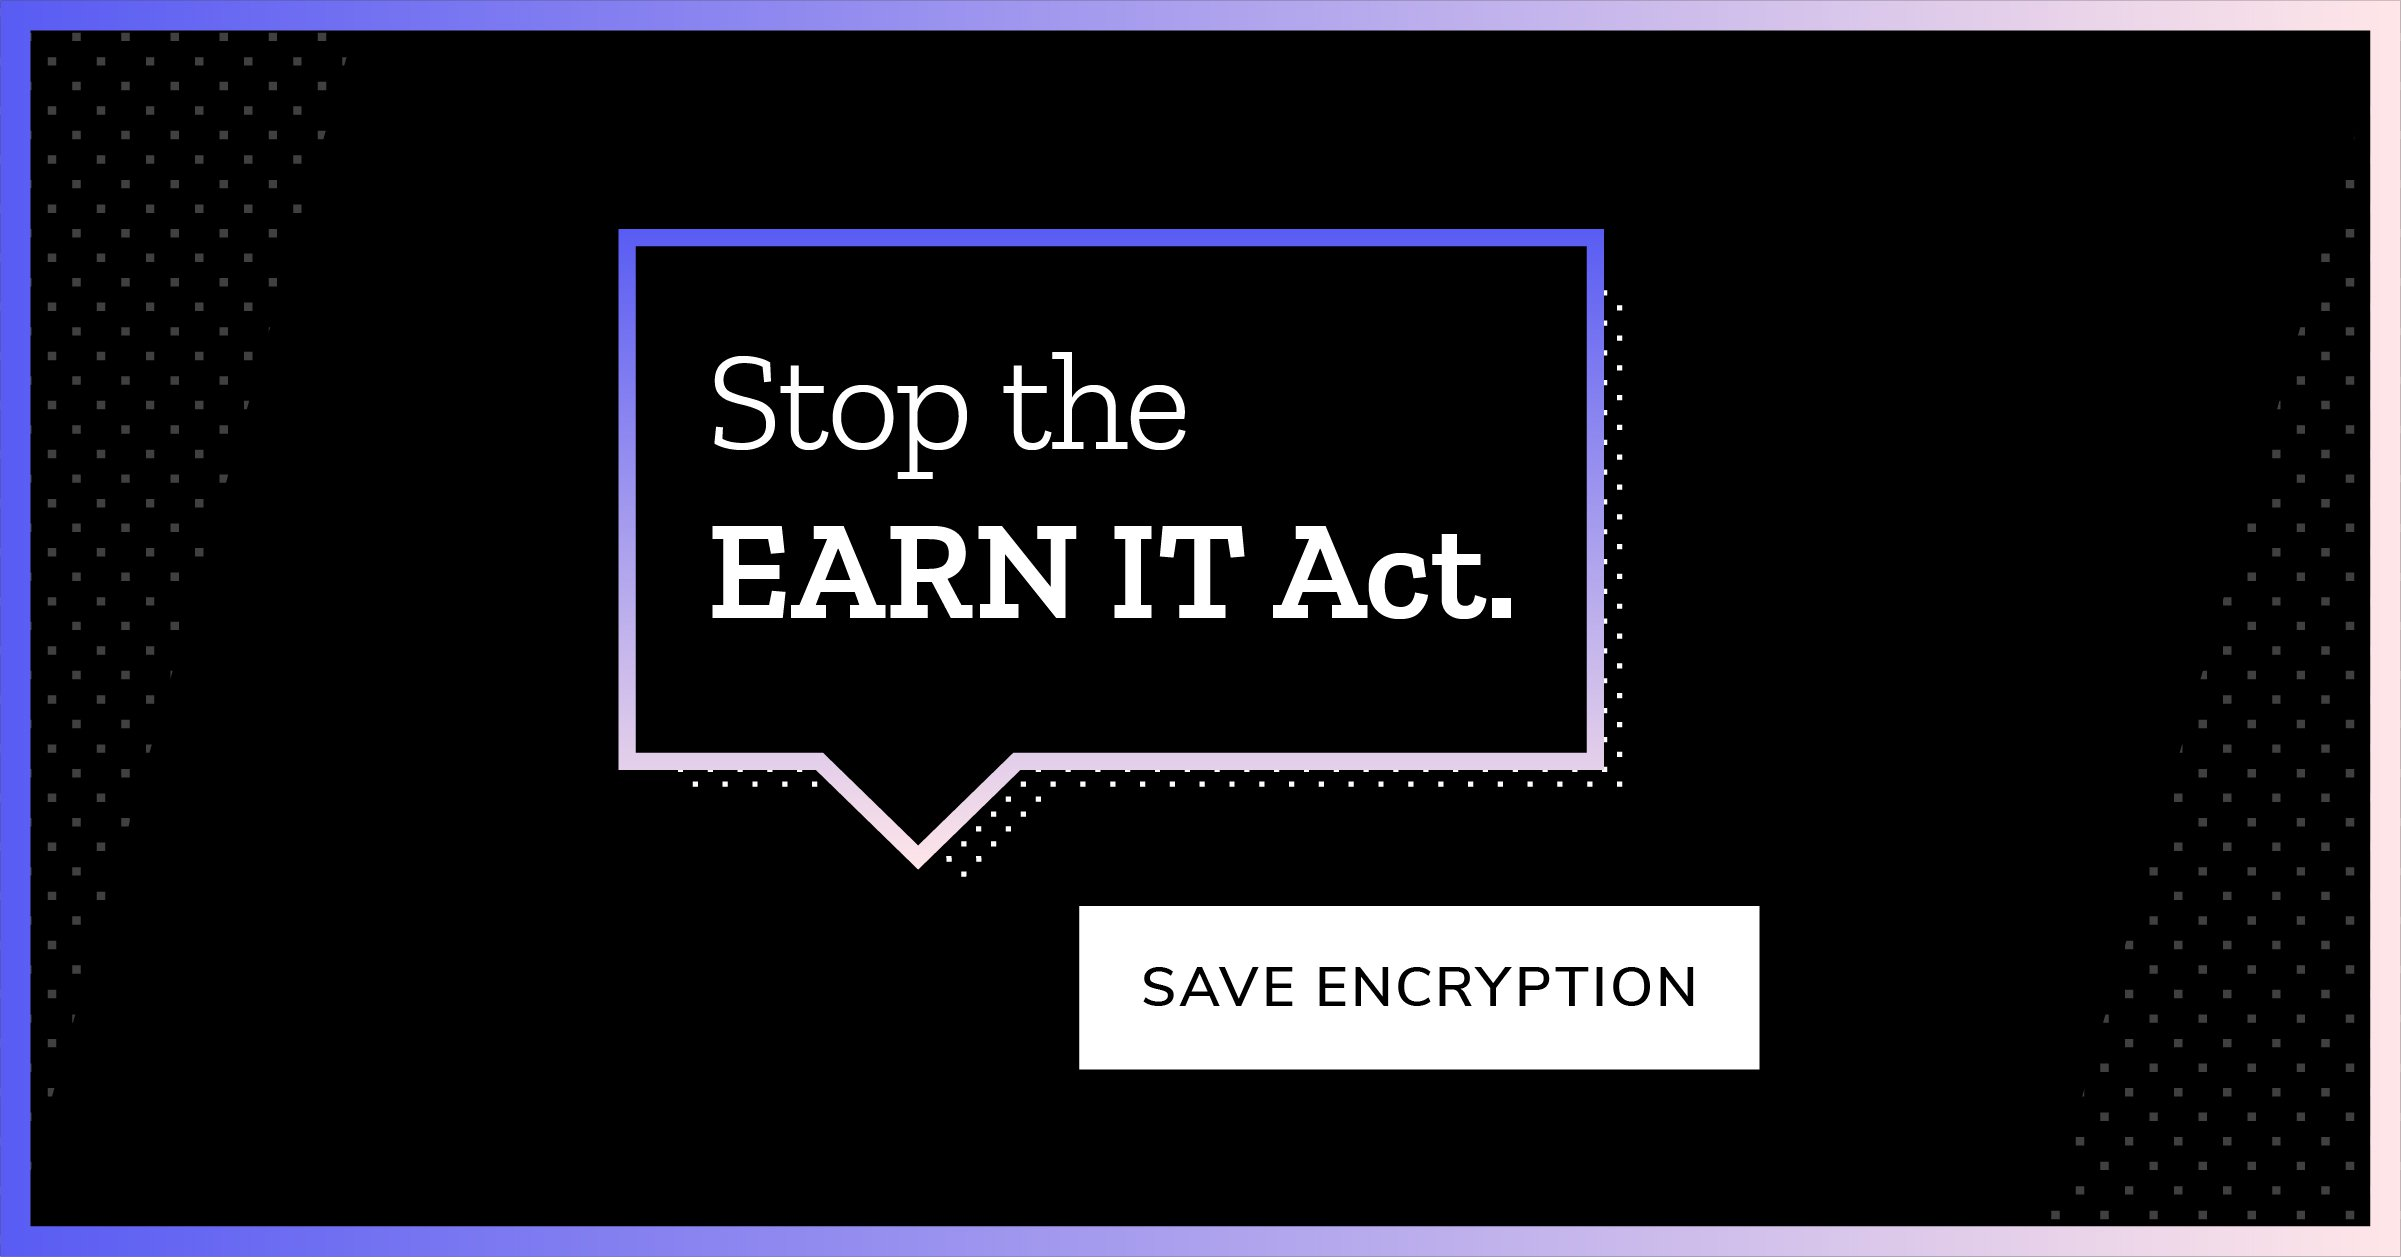 Stop the EARN IT Act. Save encryption.